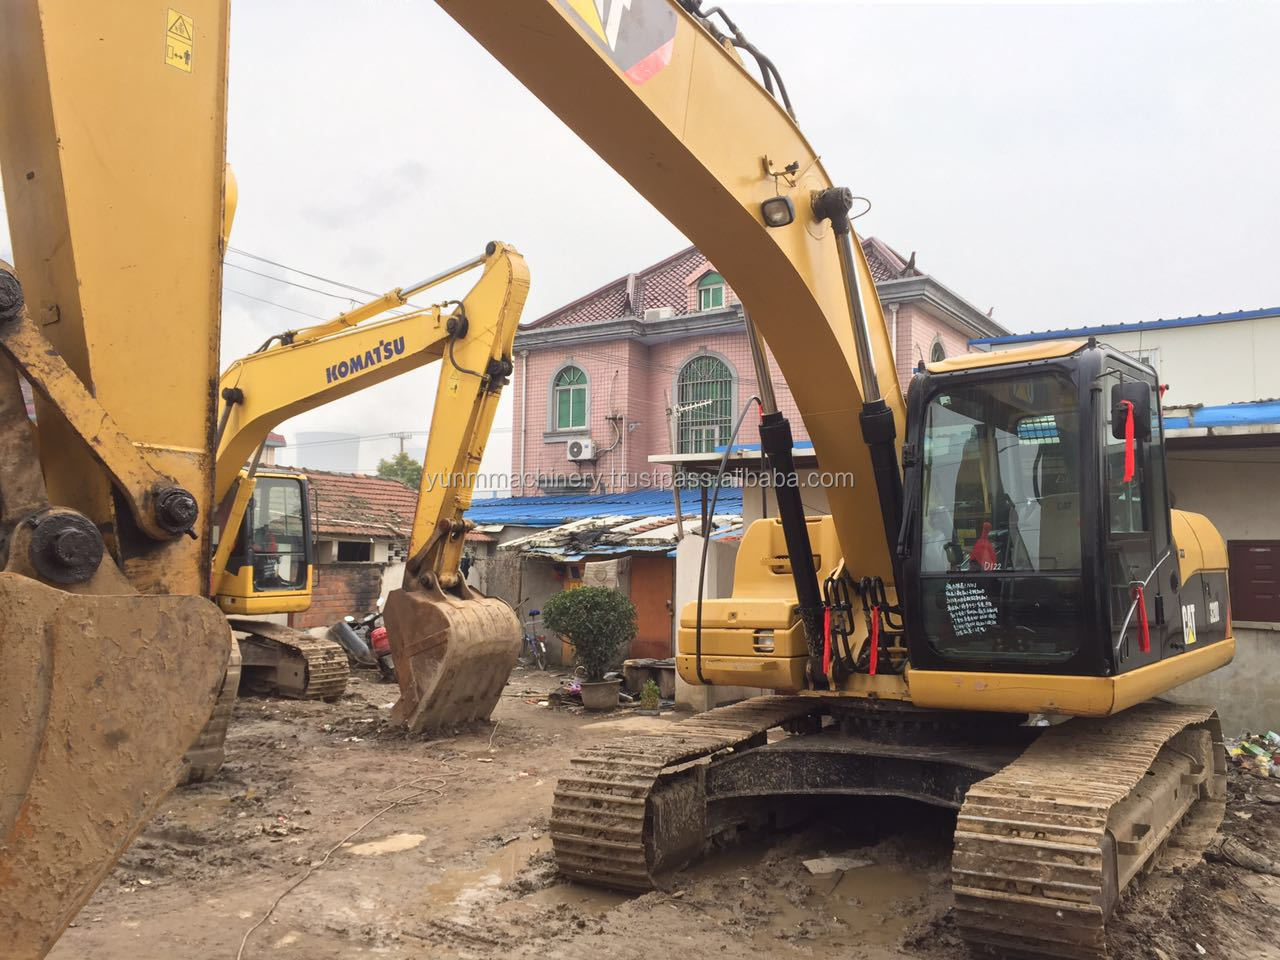 USED construction Caterpillar 320D earth moving excavator machine CAT 320B 320C 330C used excavator